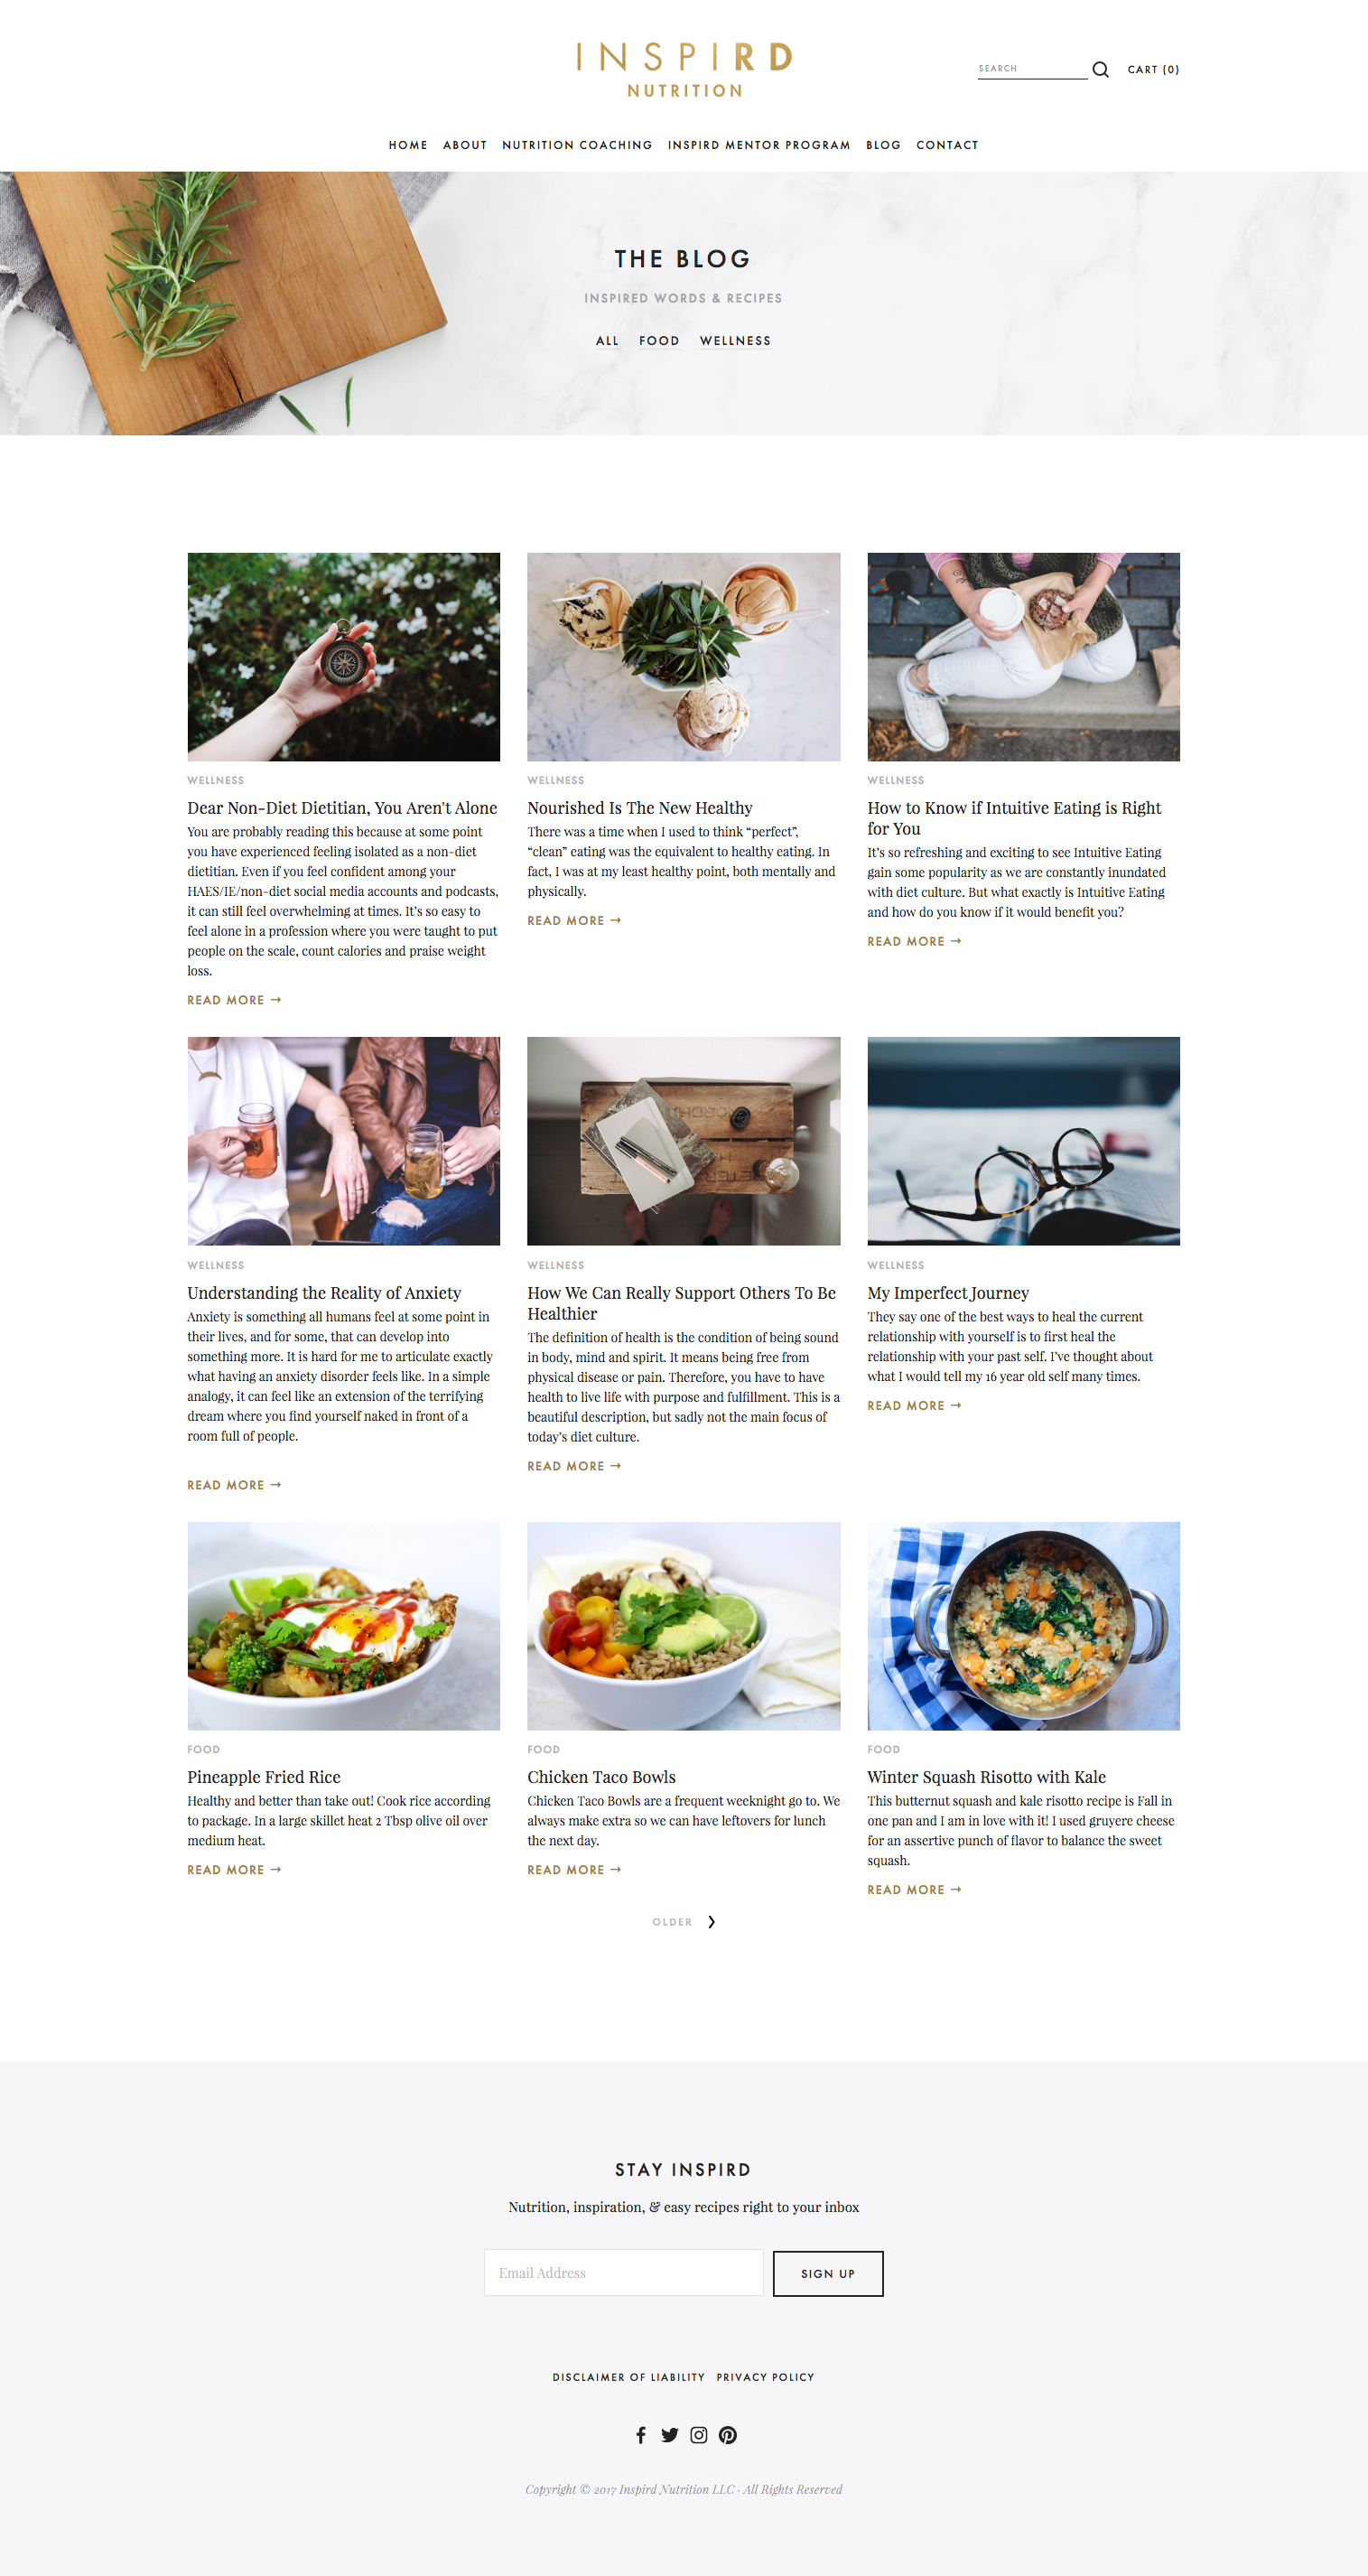 Inspird Nutrition Web Design by LR Creative